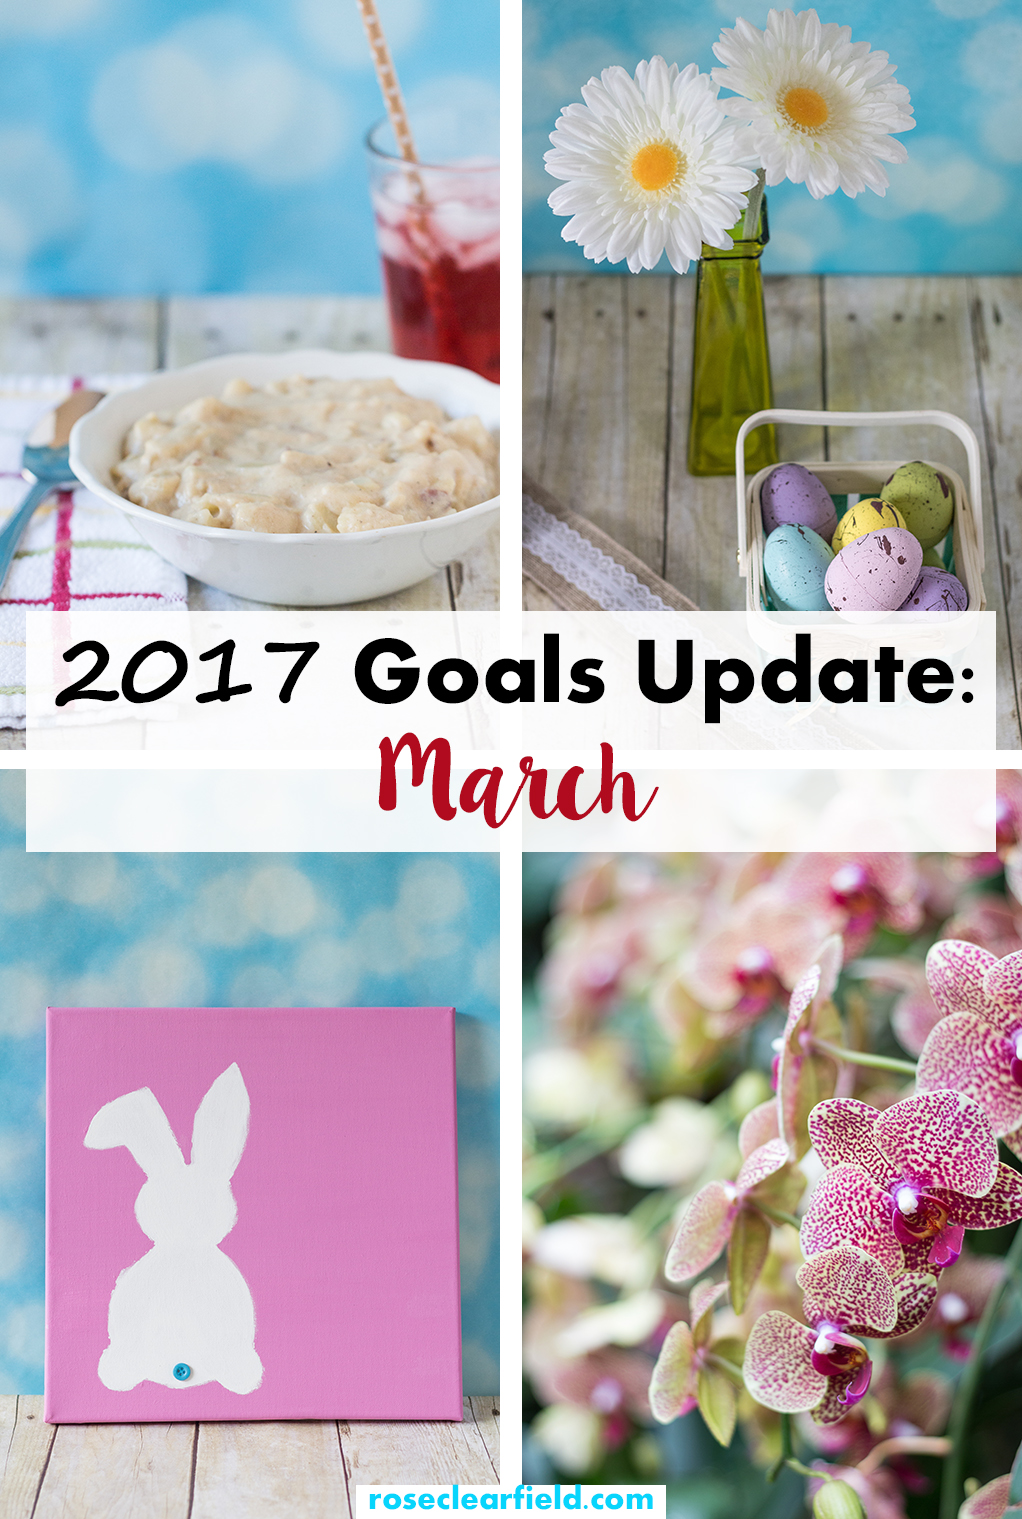 2017 Goals Update March | https://www.roseclearfield.com